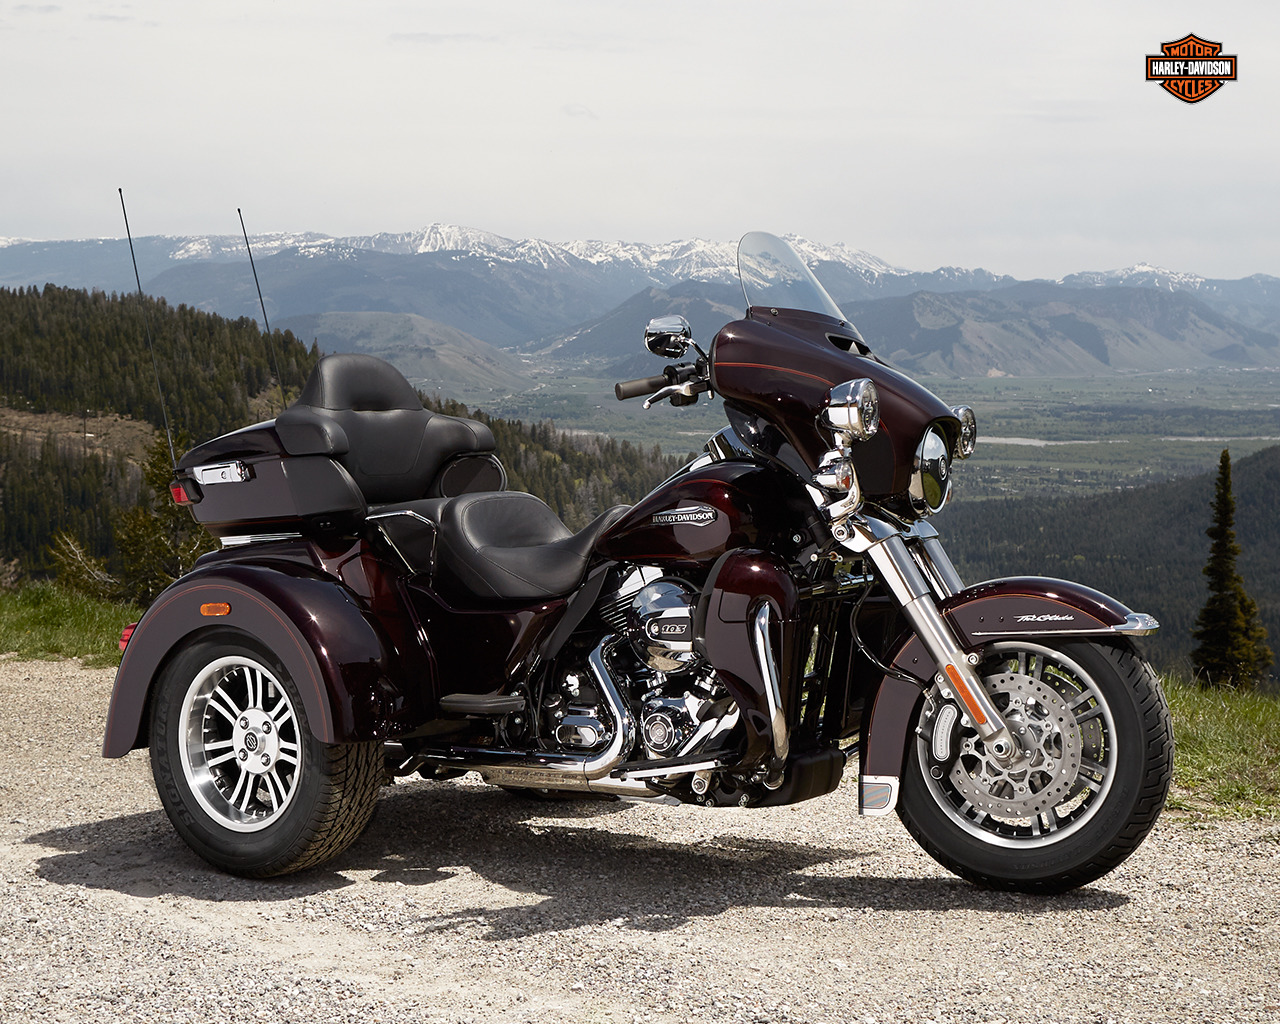 Tri Glide Wallpaper: Harley-Davidson Tri Glide Ultra Photo Gallery